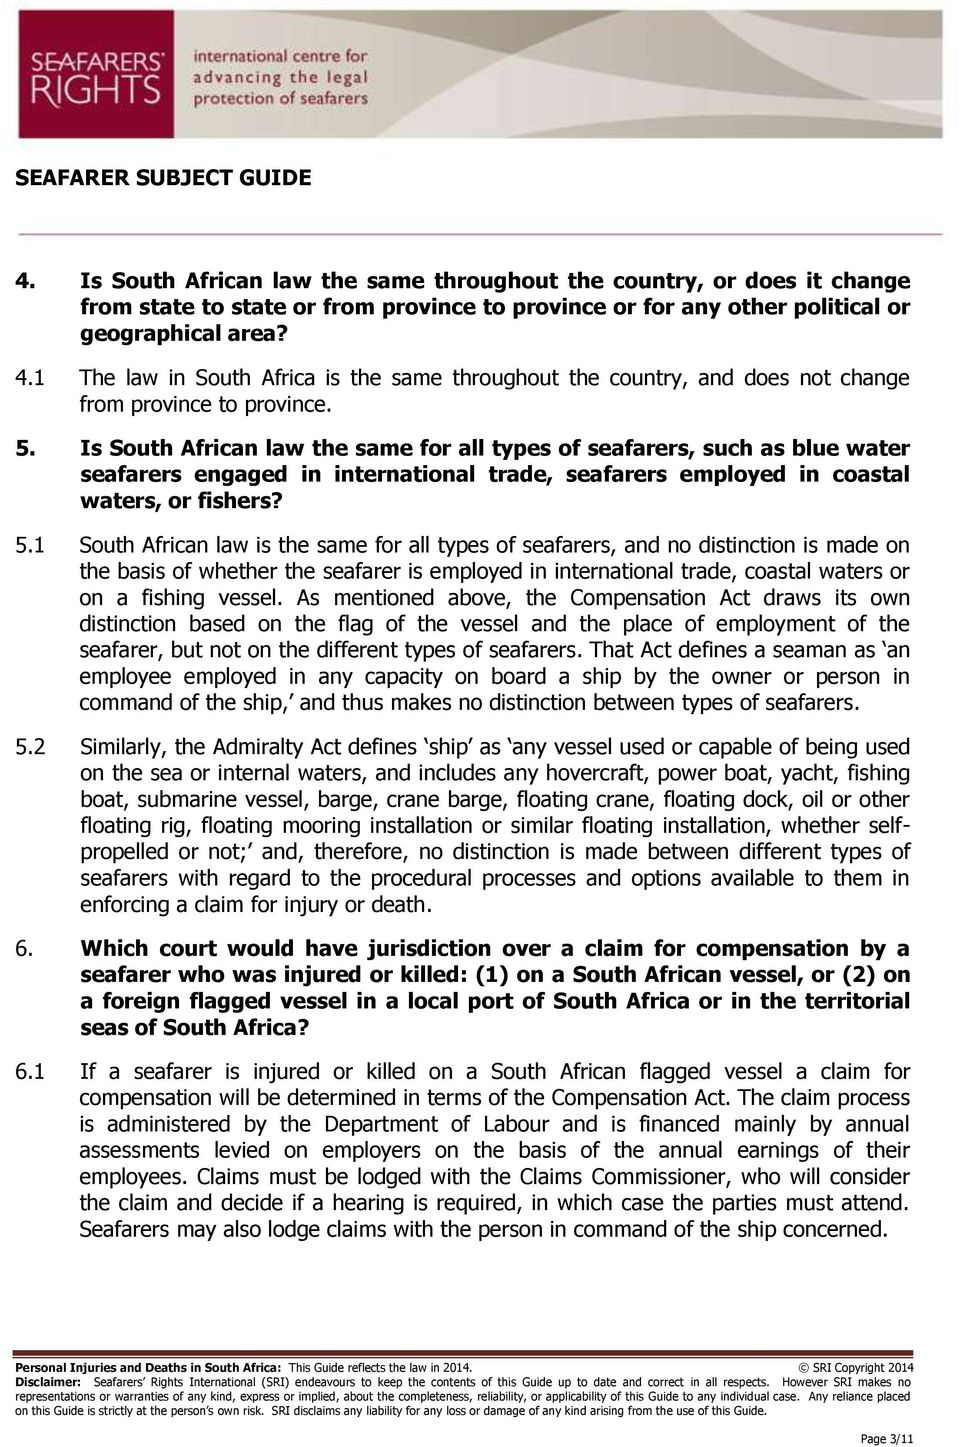 Is South African law the same for all types of seafarers, such as blue water seafarers engaged in international trade, seafarers employed in coastal waters, or fishers? 5.